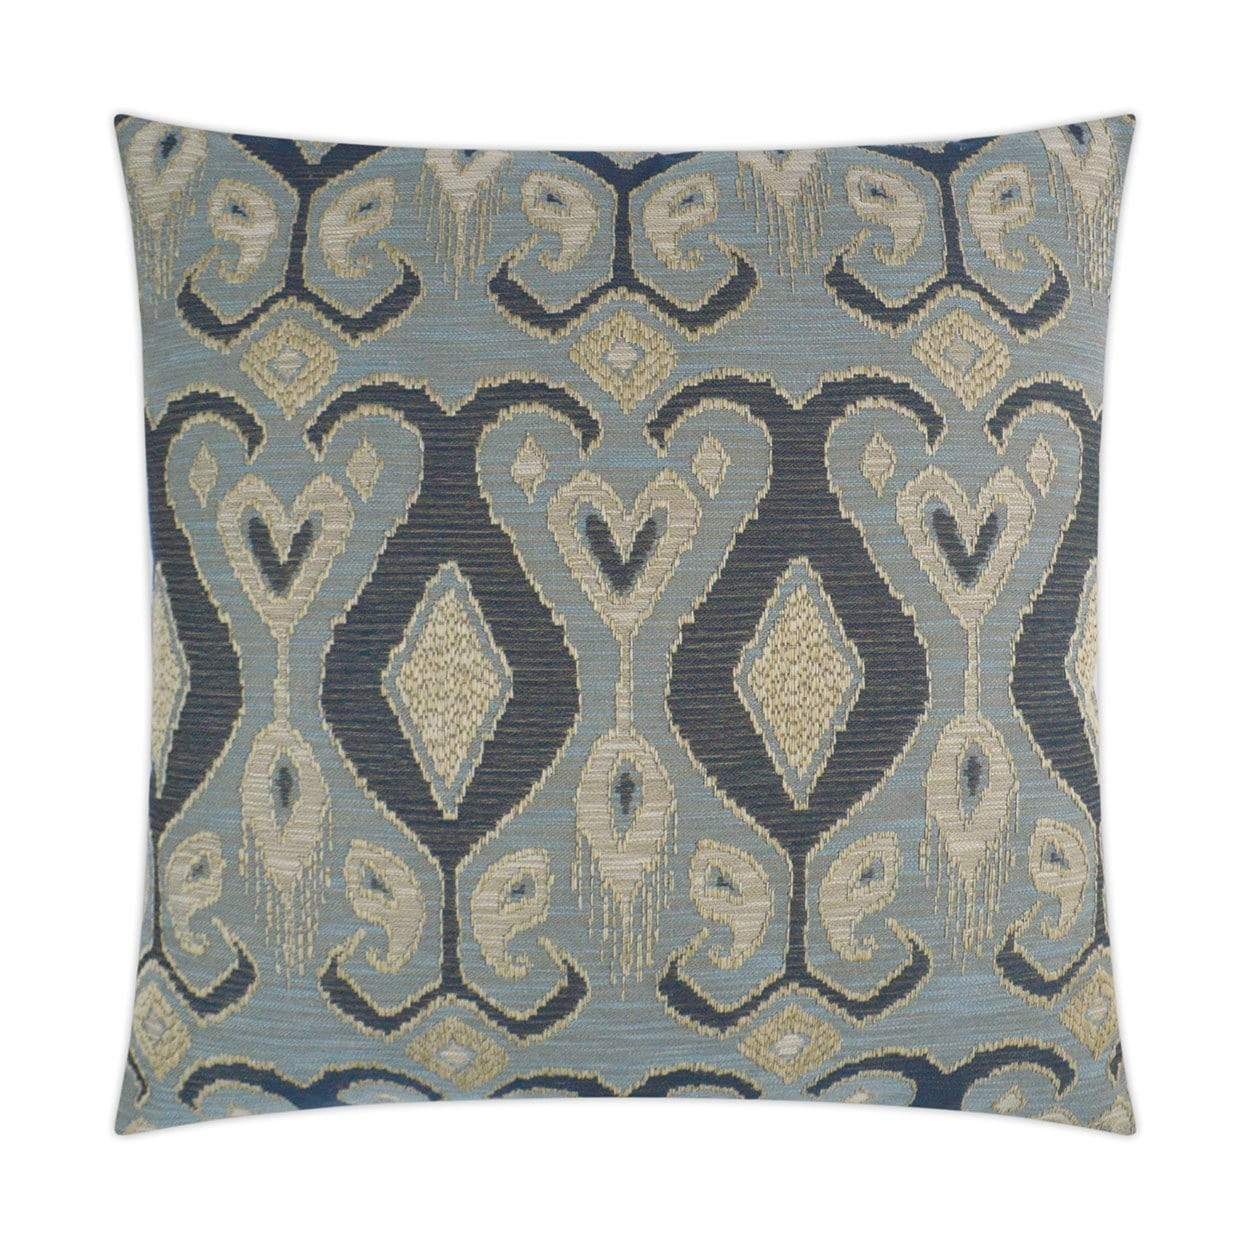 D.V. Kap D.V. Kap Bristol Pillow - Available in 2 Colors Blue 3328-B